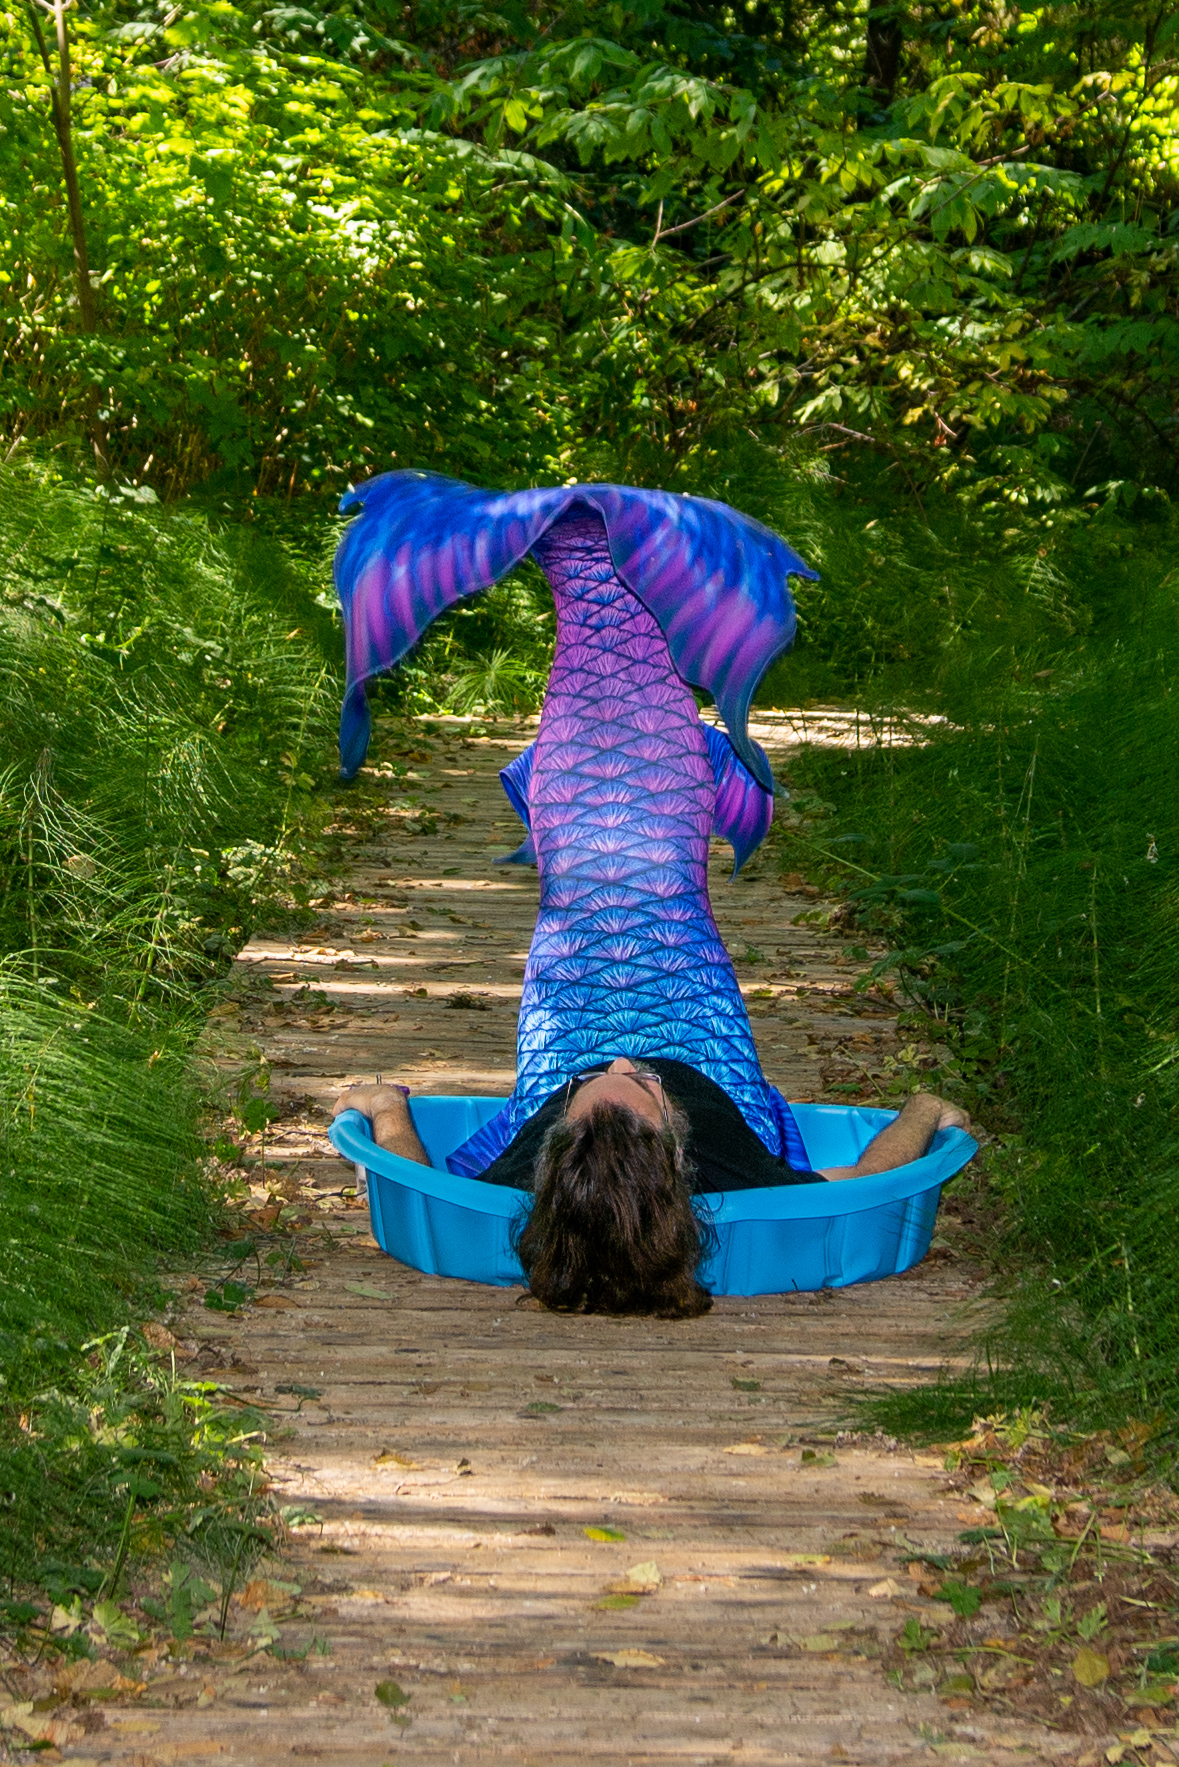 Mermaid Me Summer 2020 Photo #1254